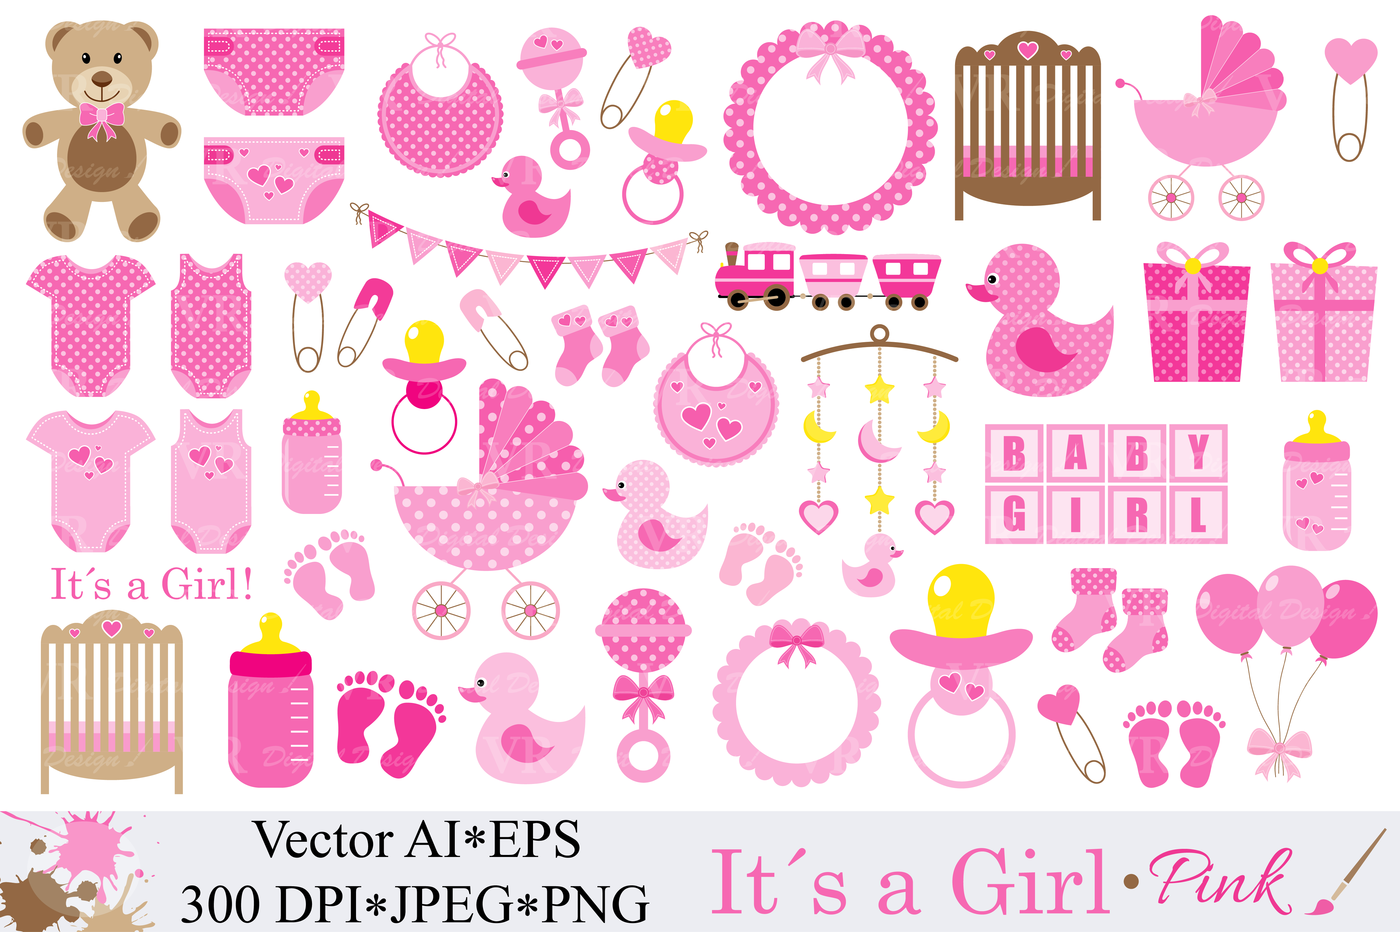 Baby Girl Clipart Pink Baby Shower Clipart Vector By Vr Digital Design Thehungryjpeg Com